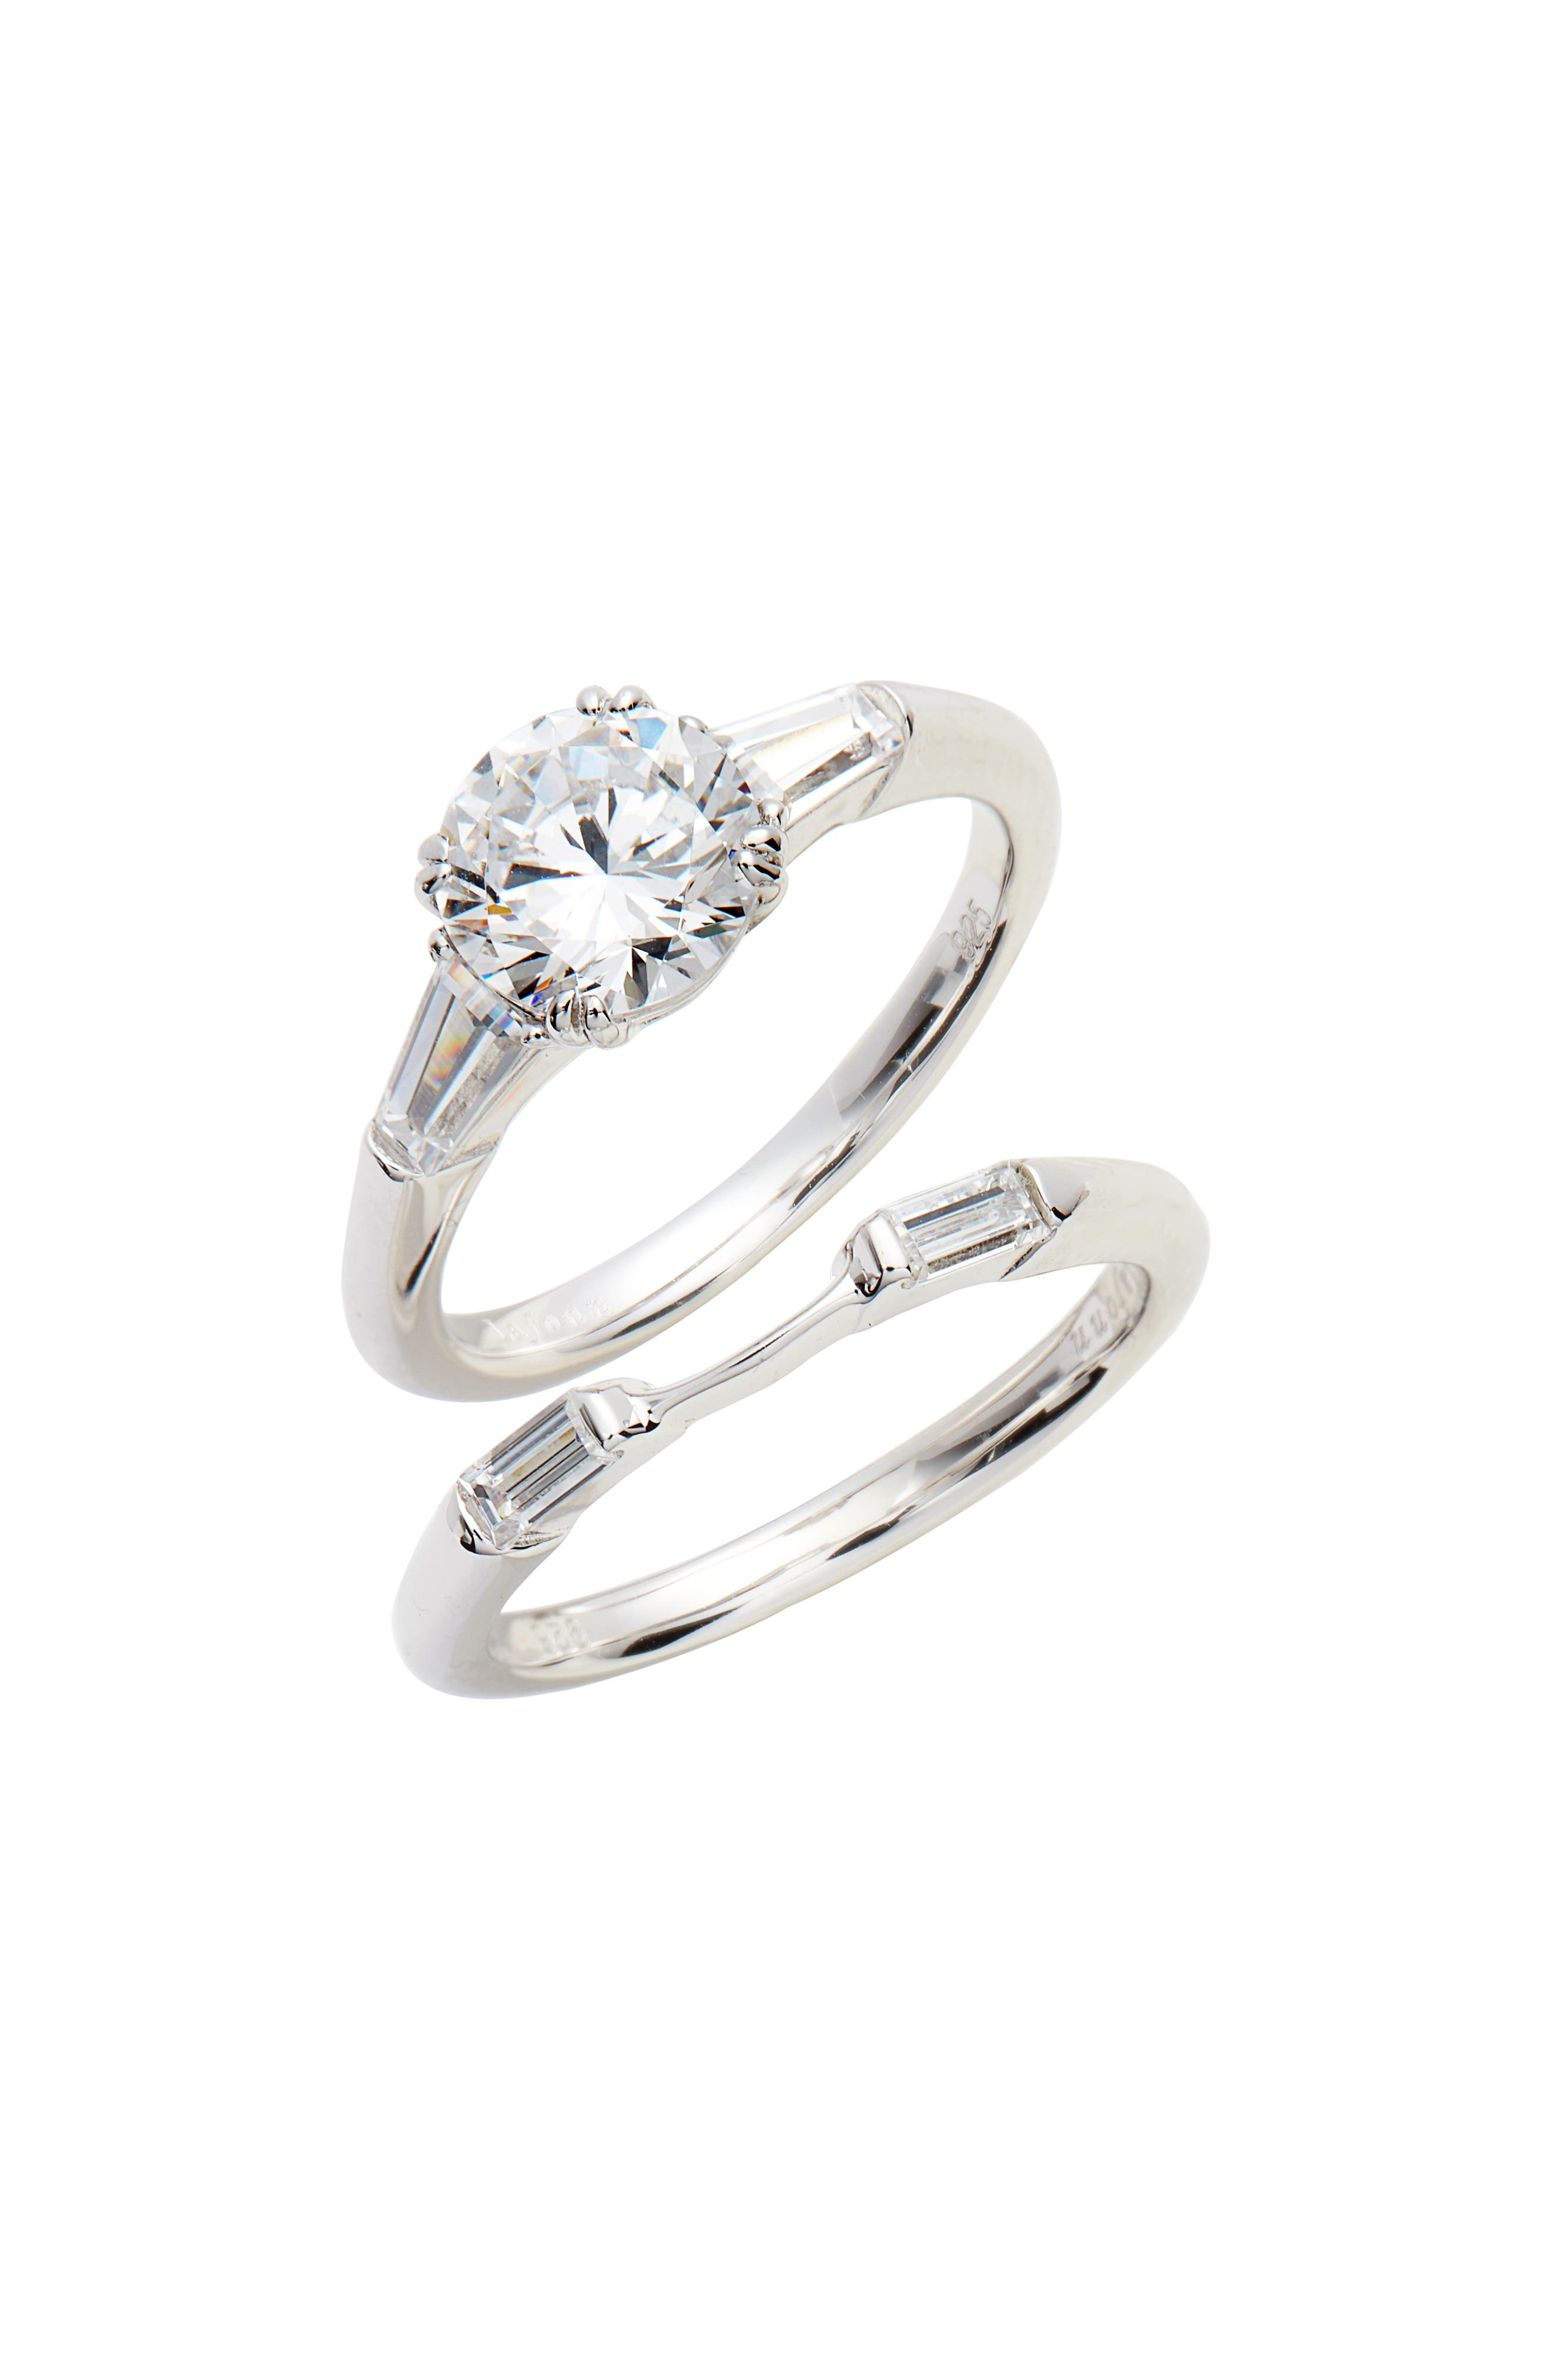 3-Stone Ring,                         Main,                         color, Silver/ Clear